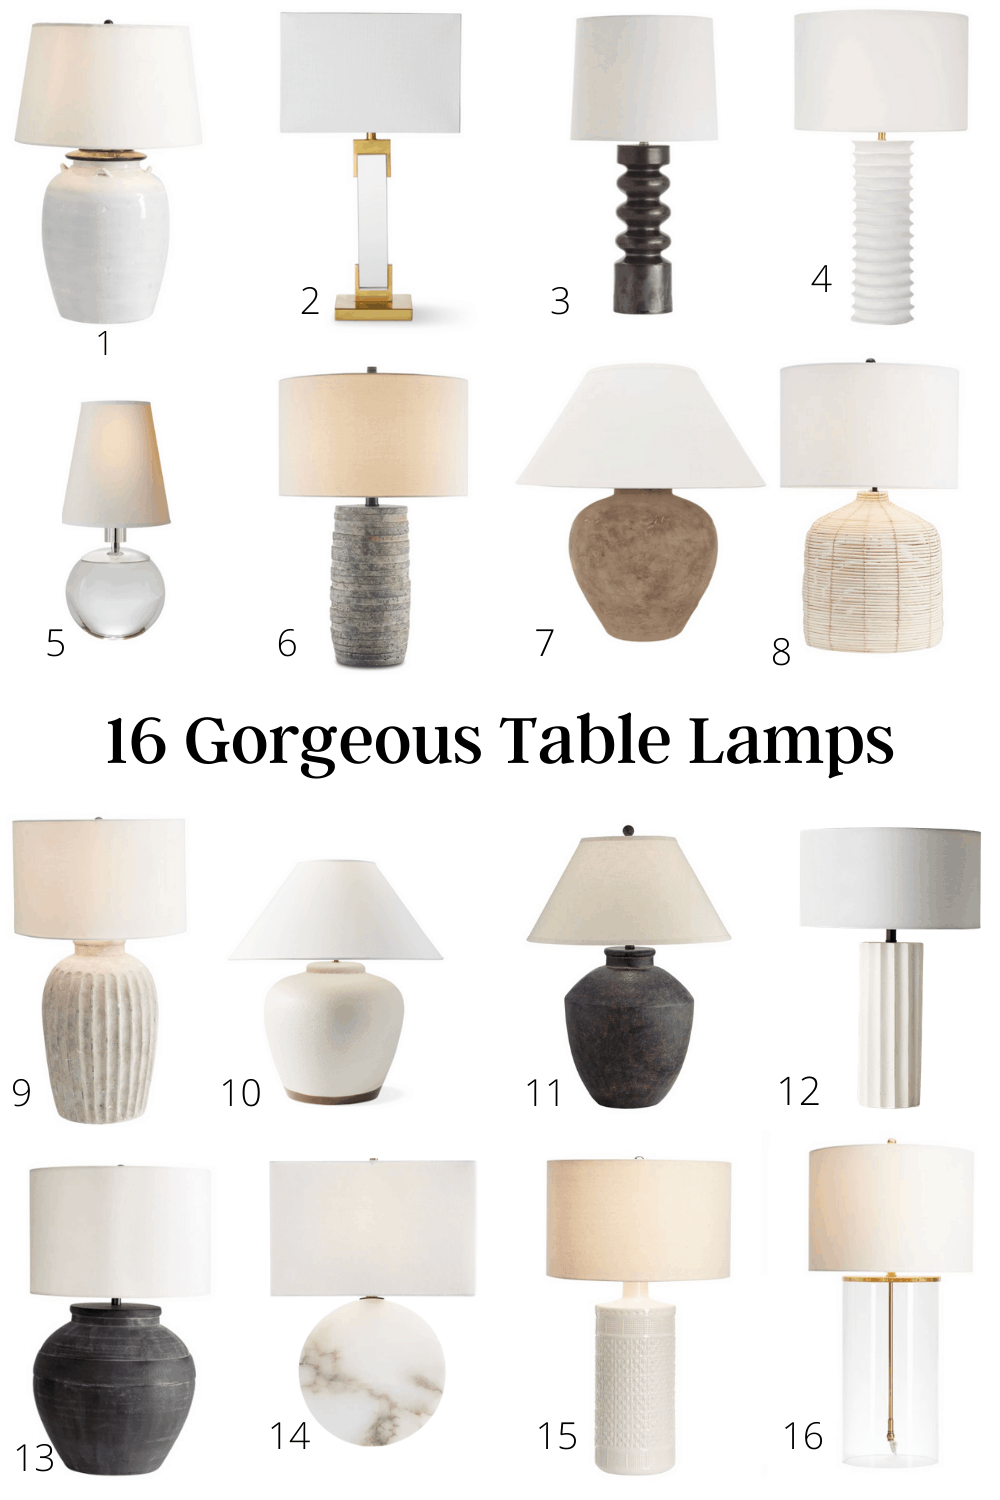 Roundup of table lamps